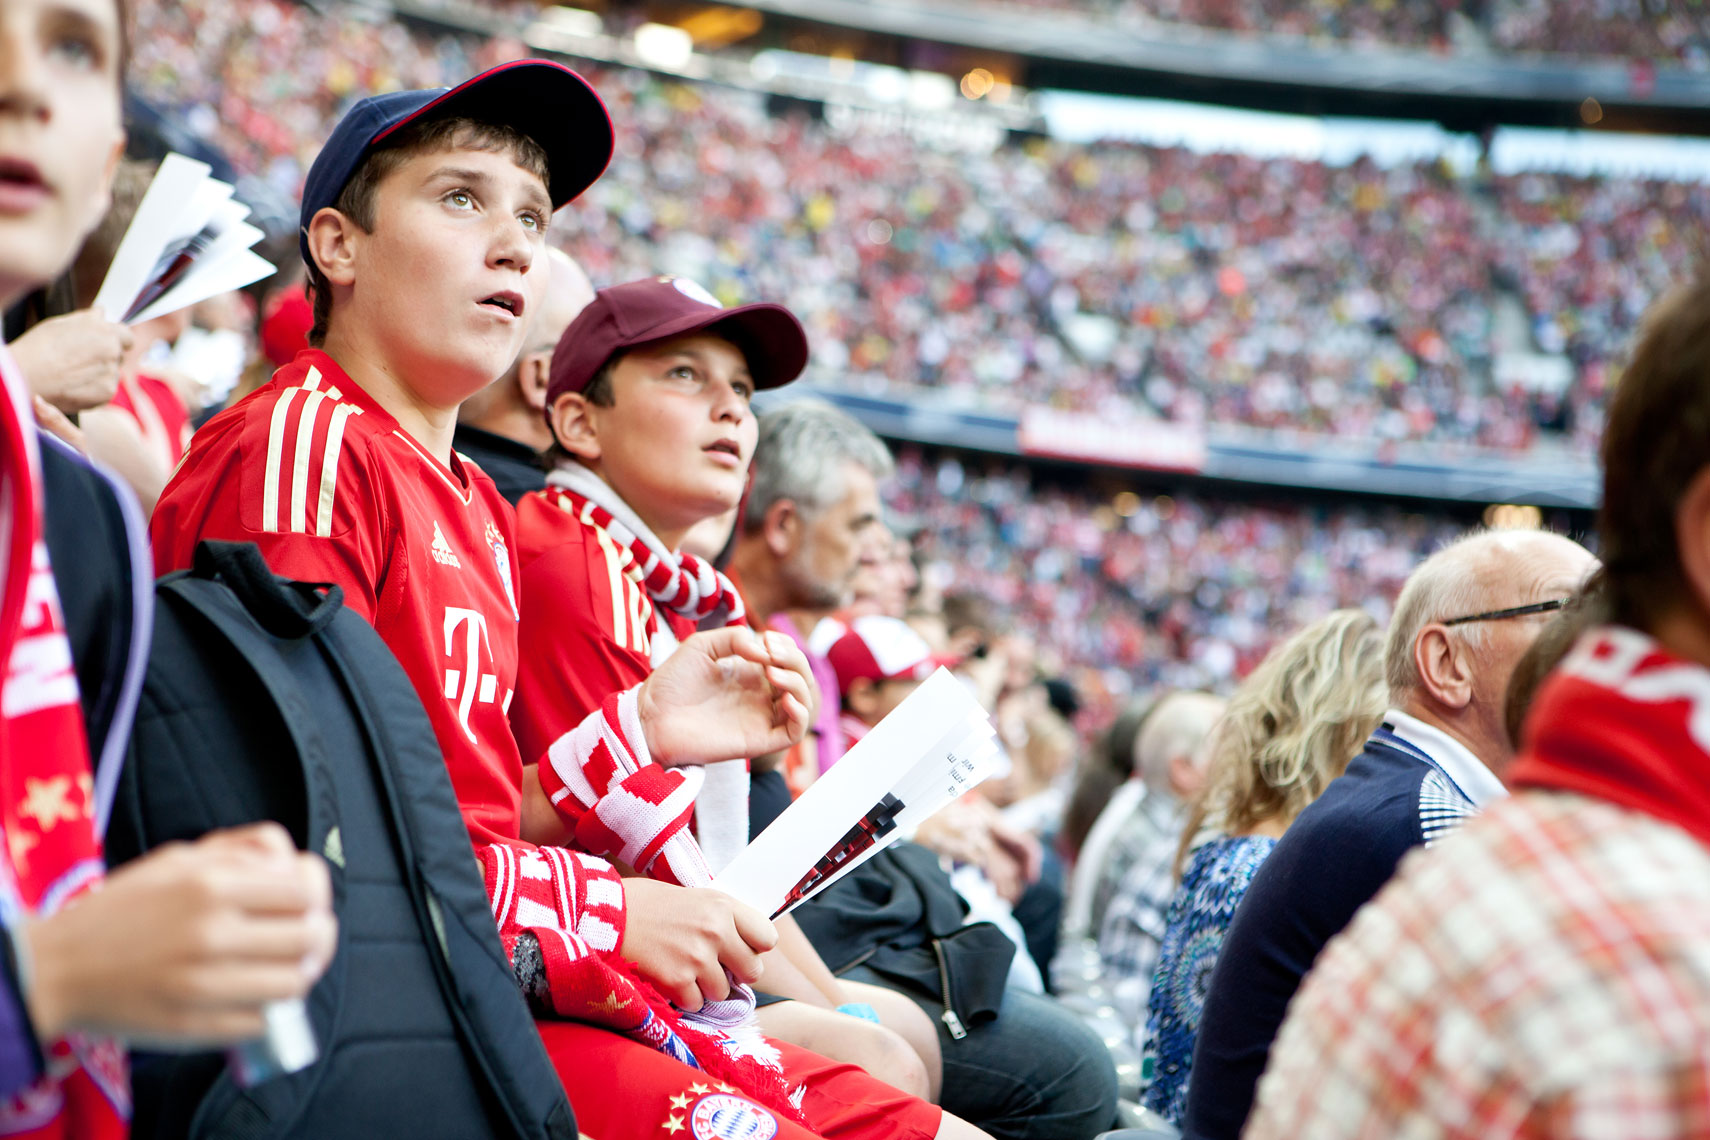 Fiat_Supercup_Allianz_Arena_04